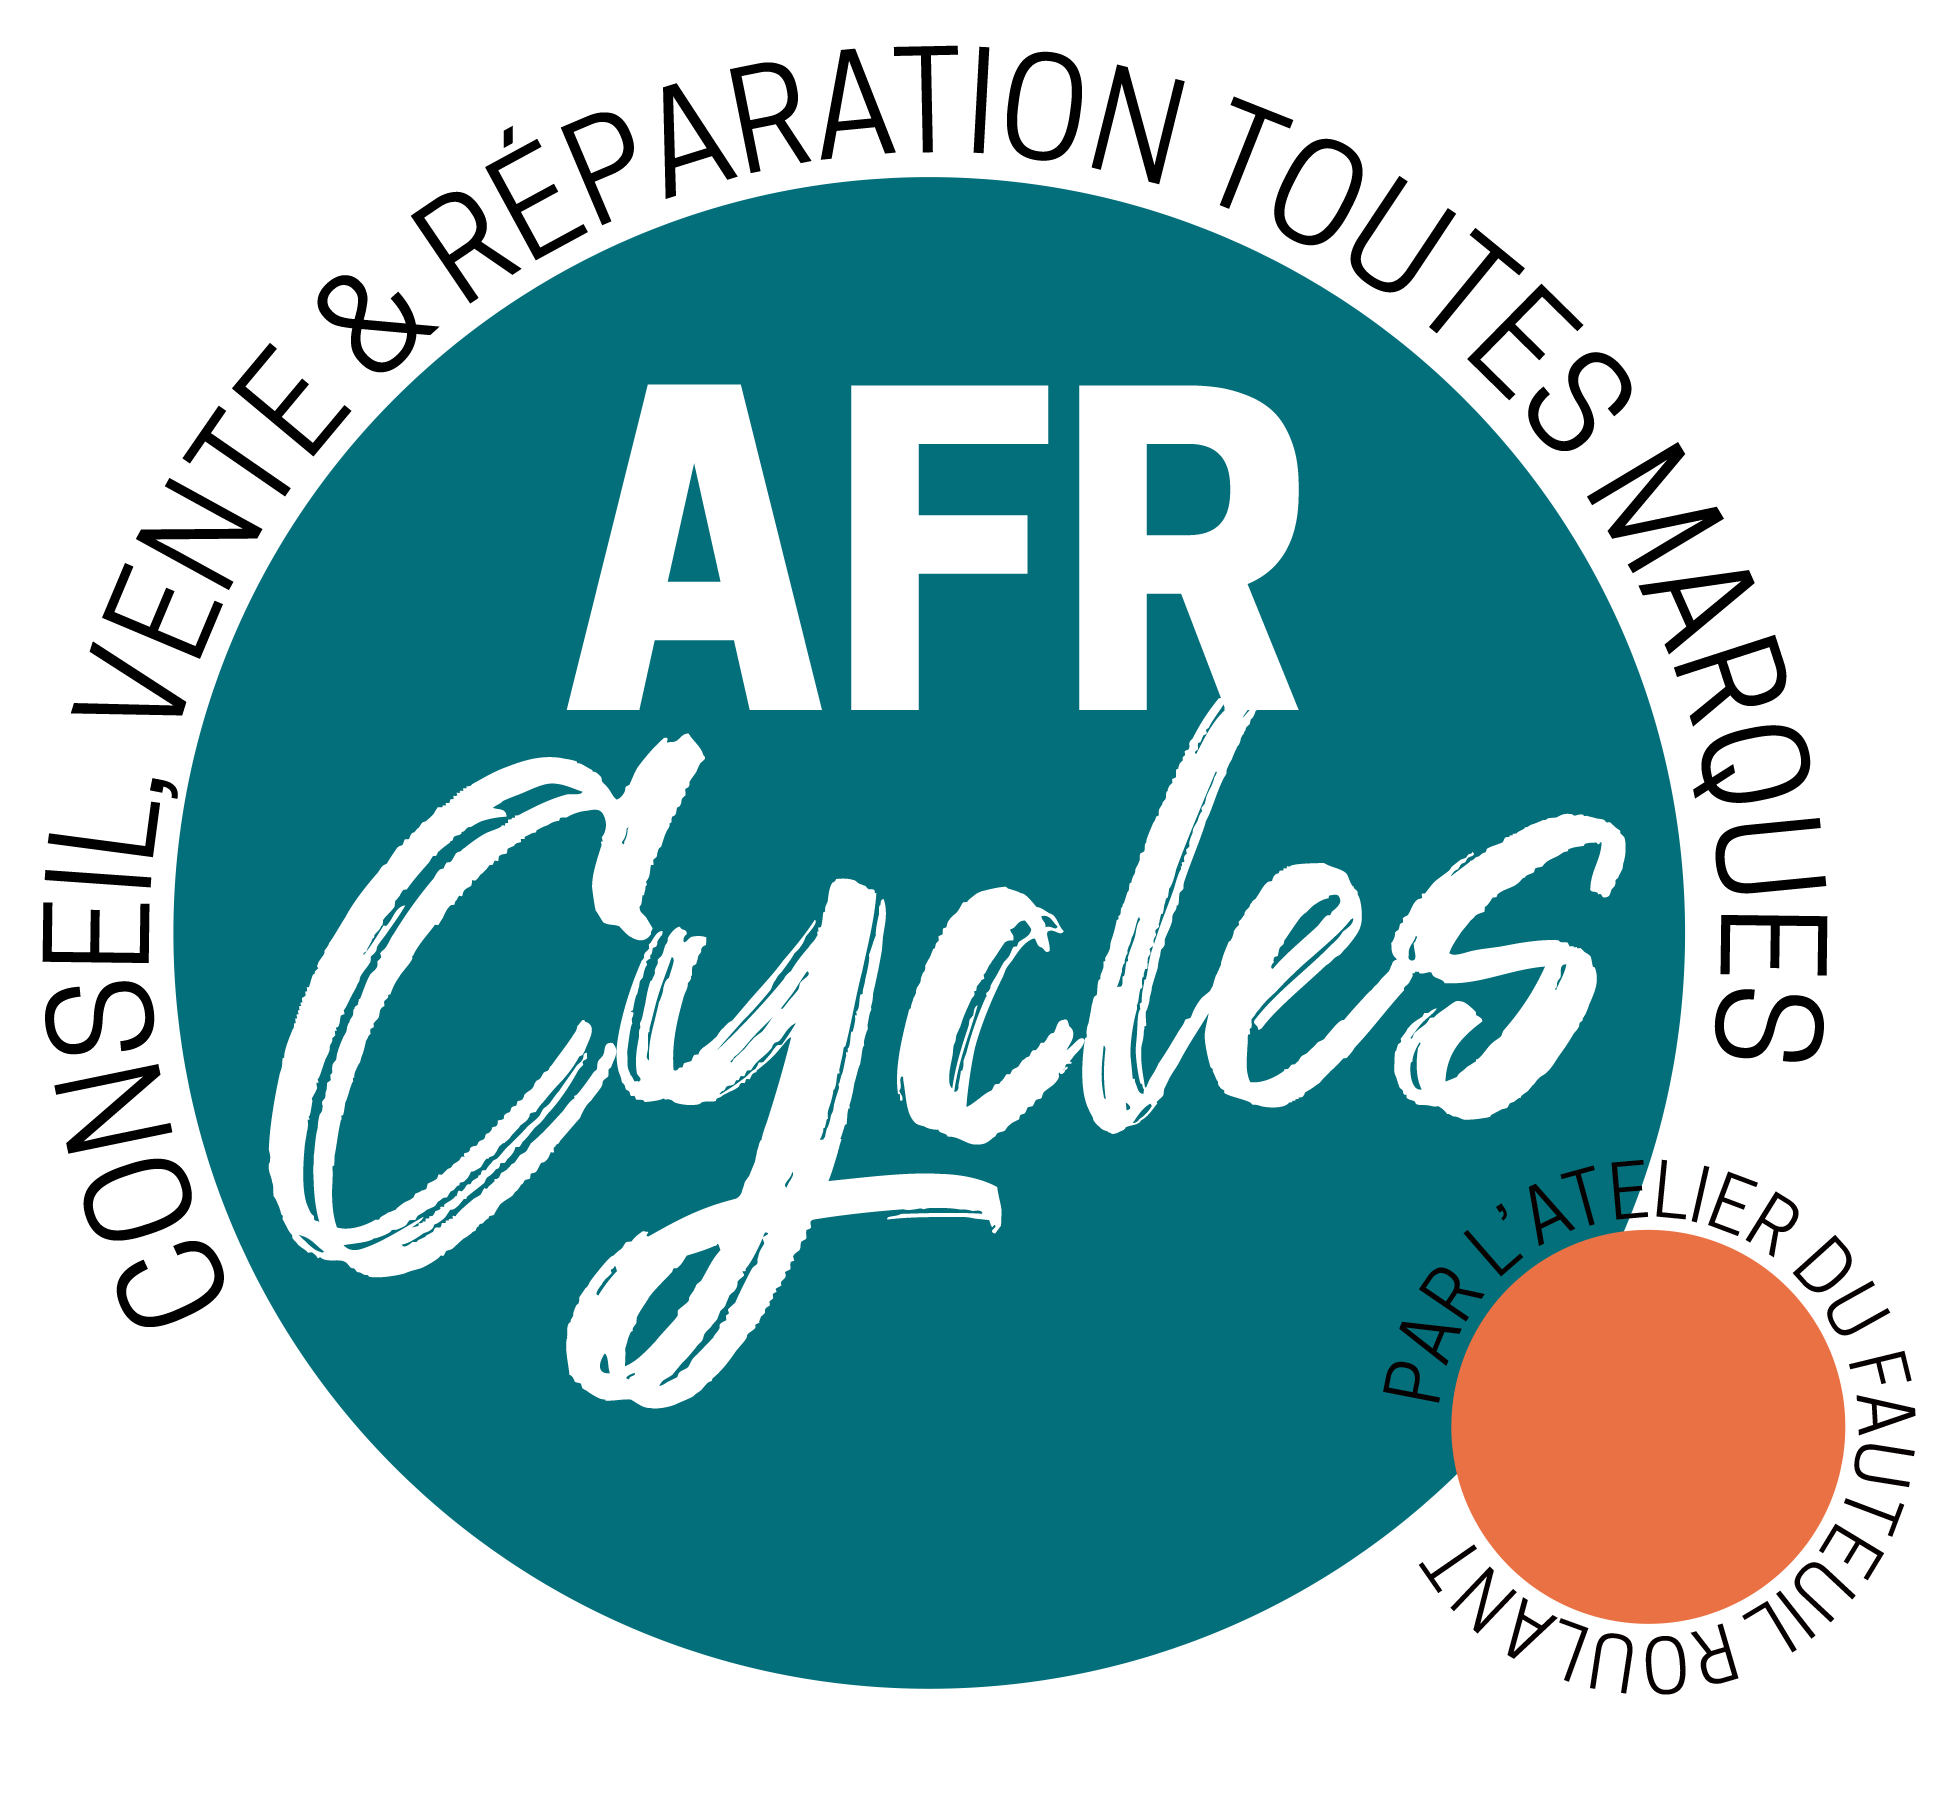 AFR CYCLES